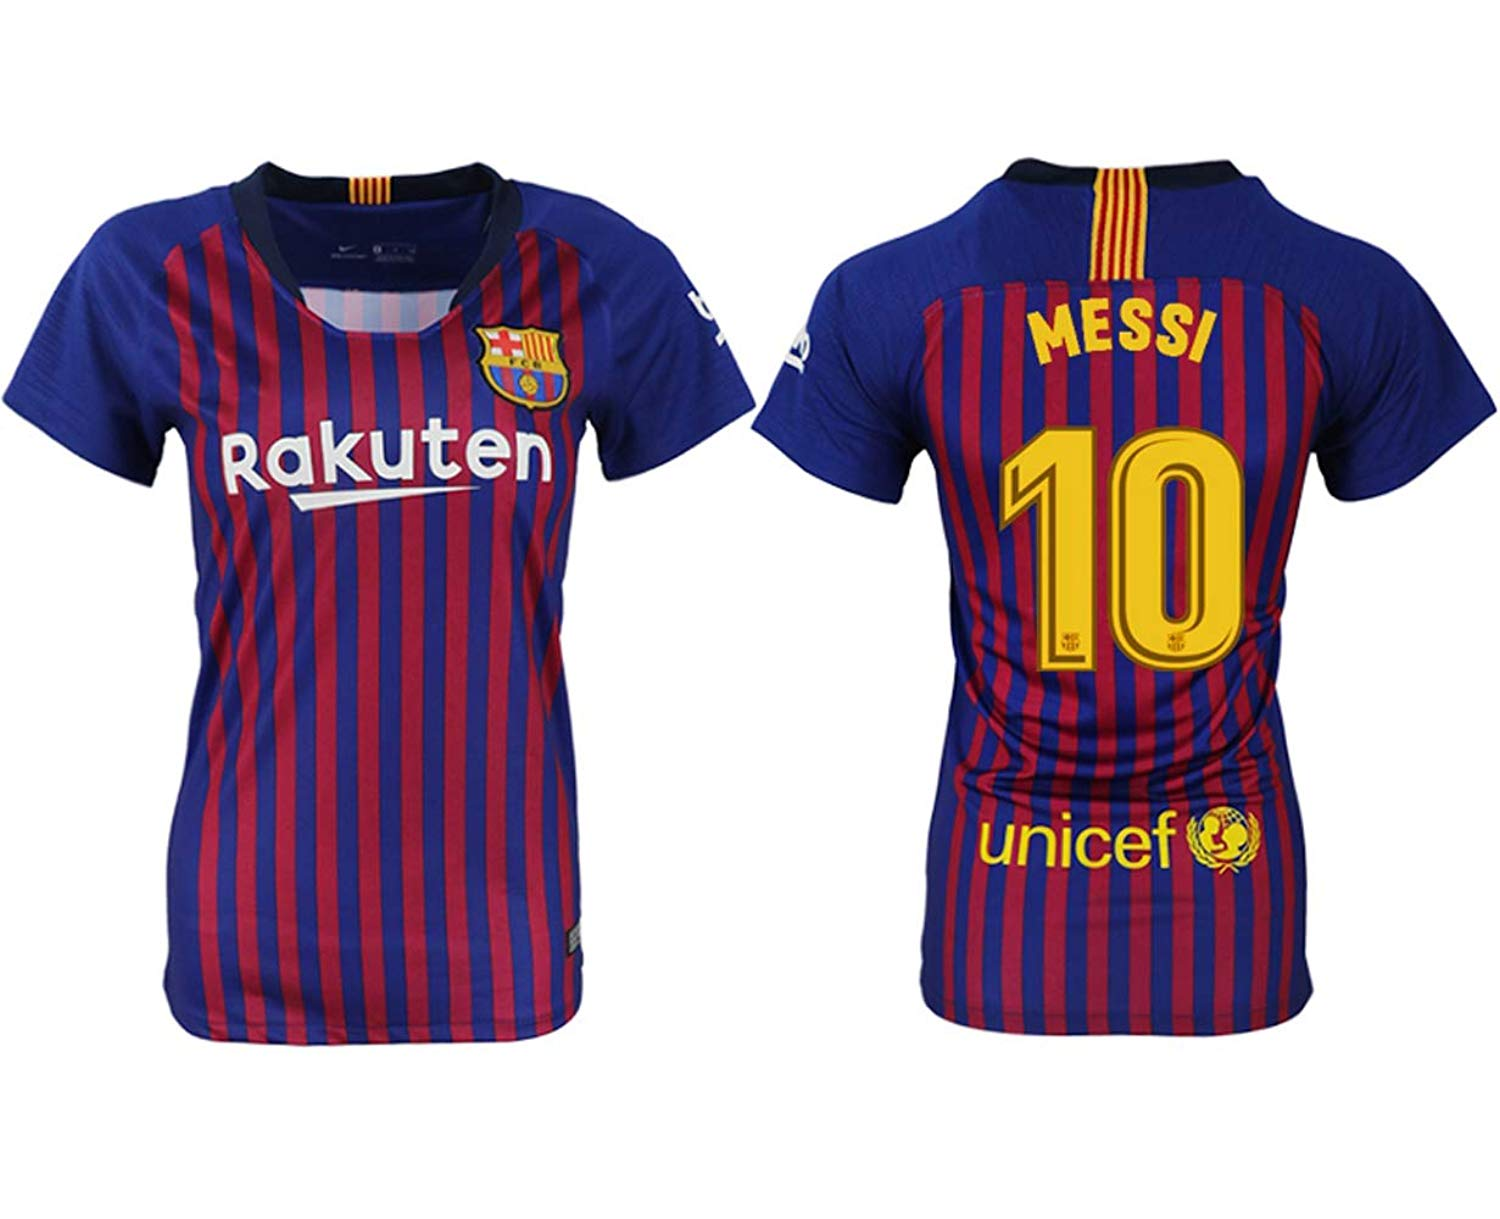 7ab69f60cd8 Get Quotations · Fun jersey Messi  10 Barcelona 2018-2019 Home Women s  Soccer Uniforms